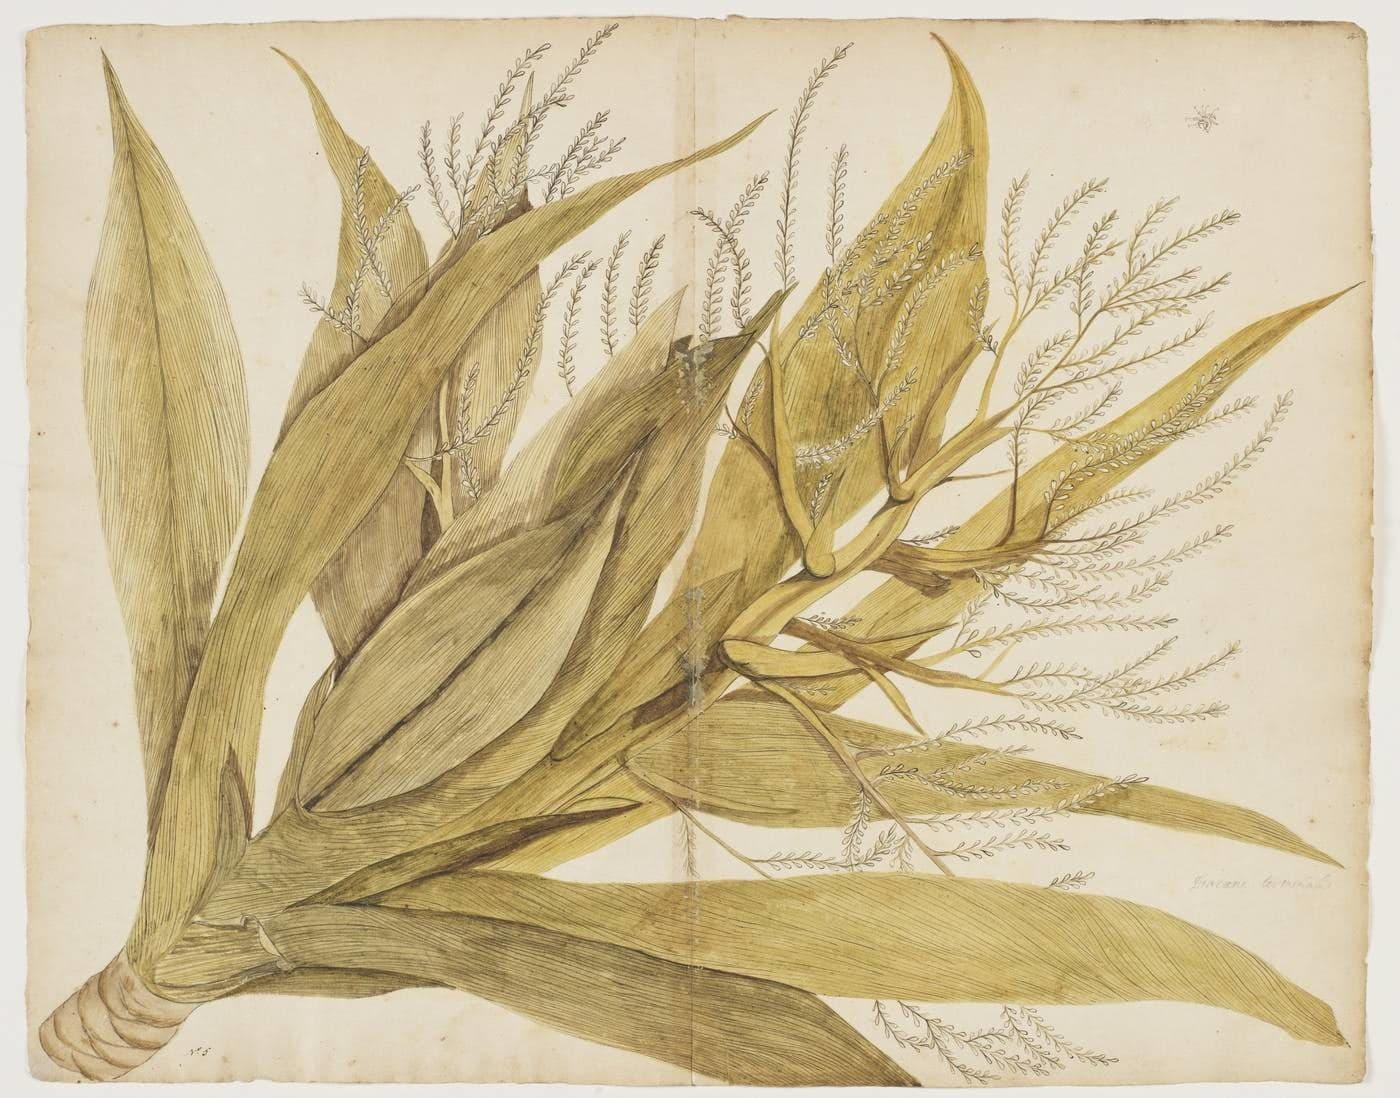 Watercolour painting of a plant